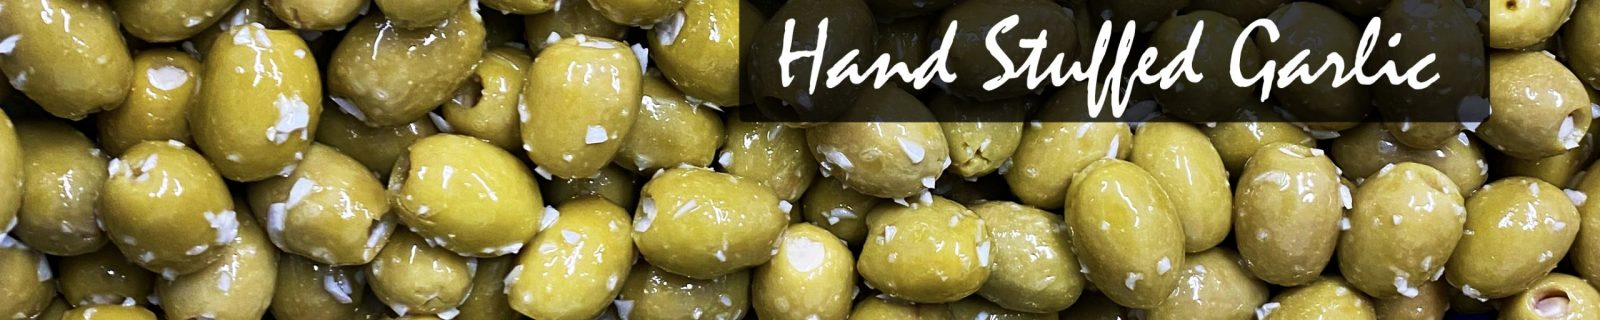 Hand-Stuffed Garlic Olives Green Stuffed Olives West Country Olives